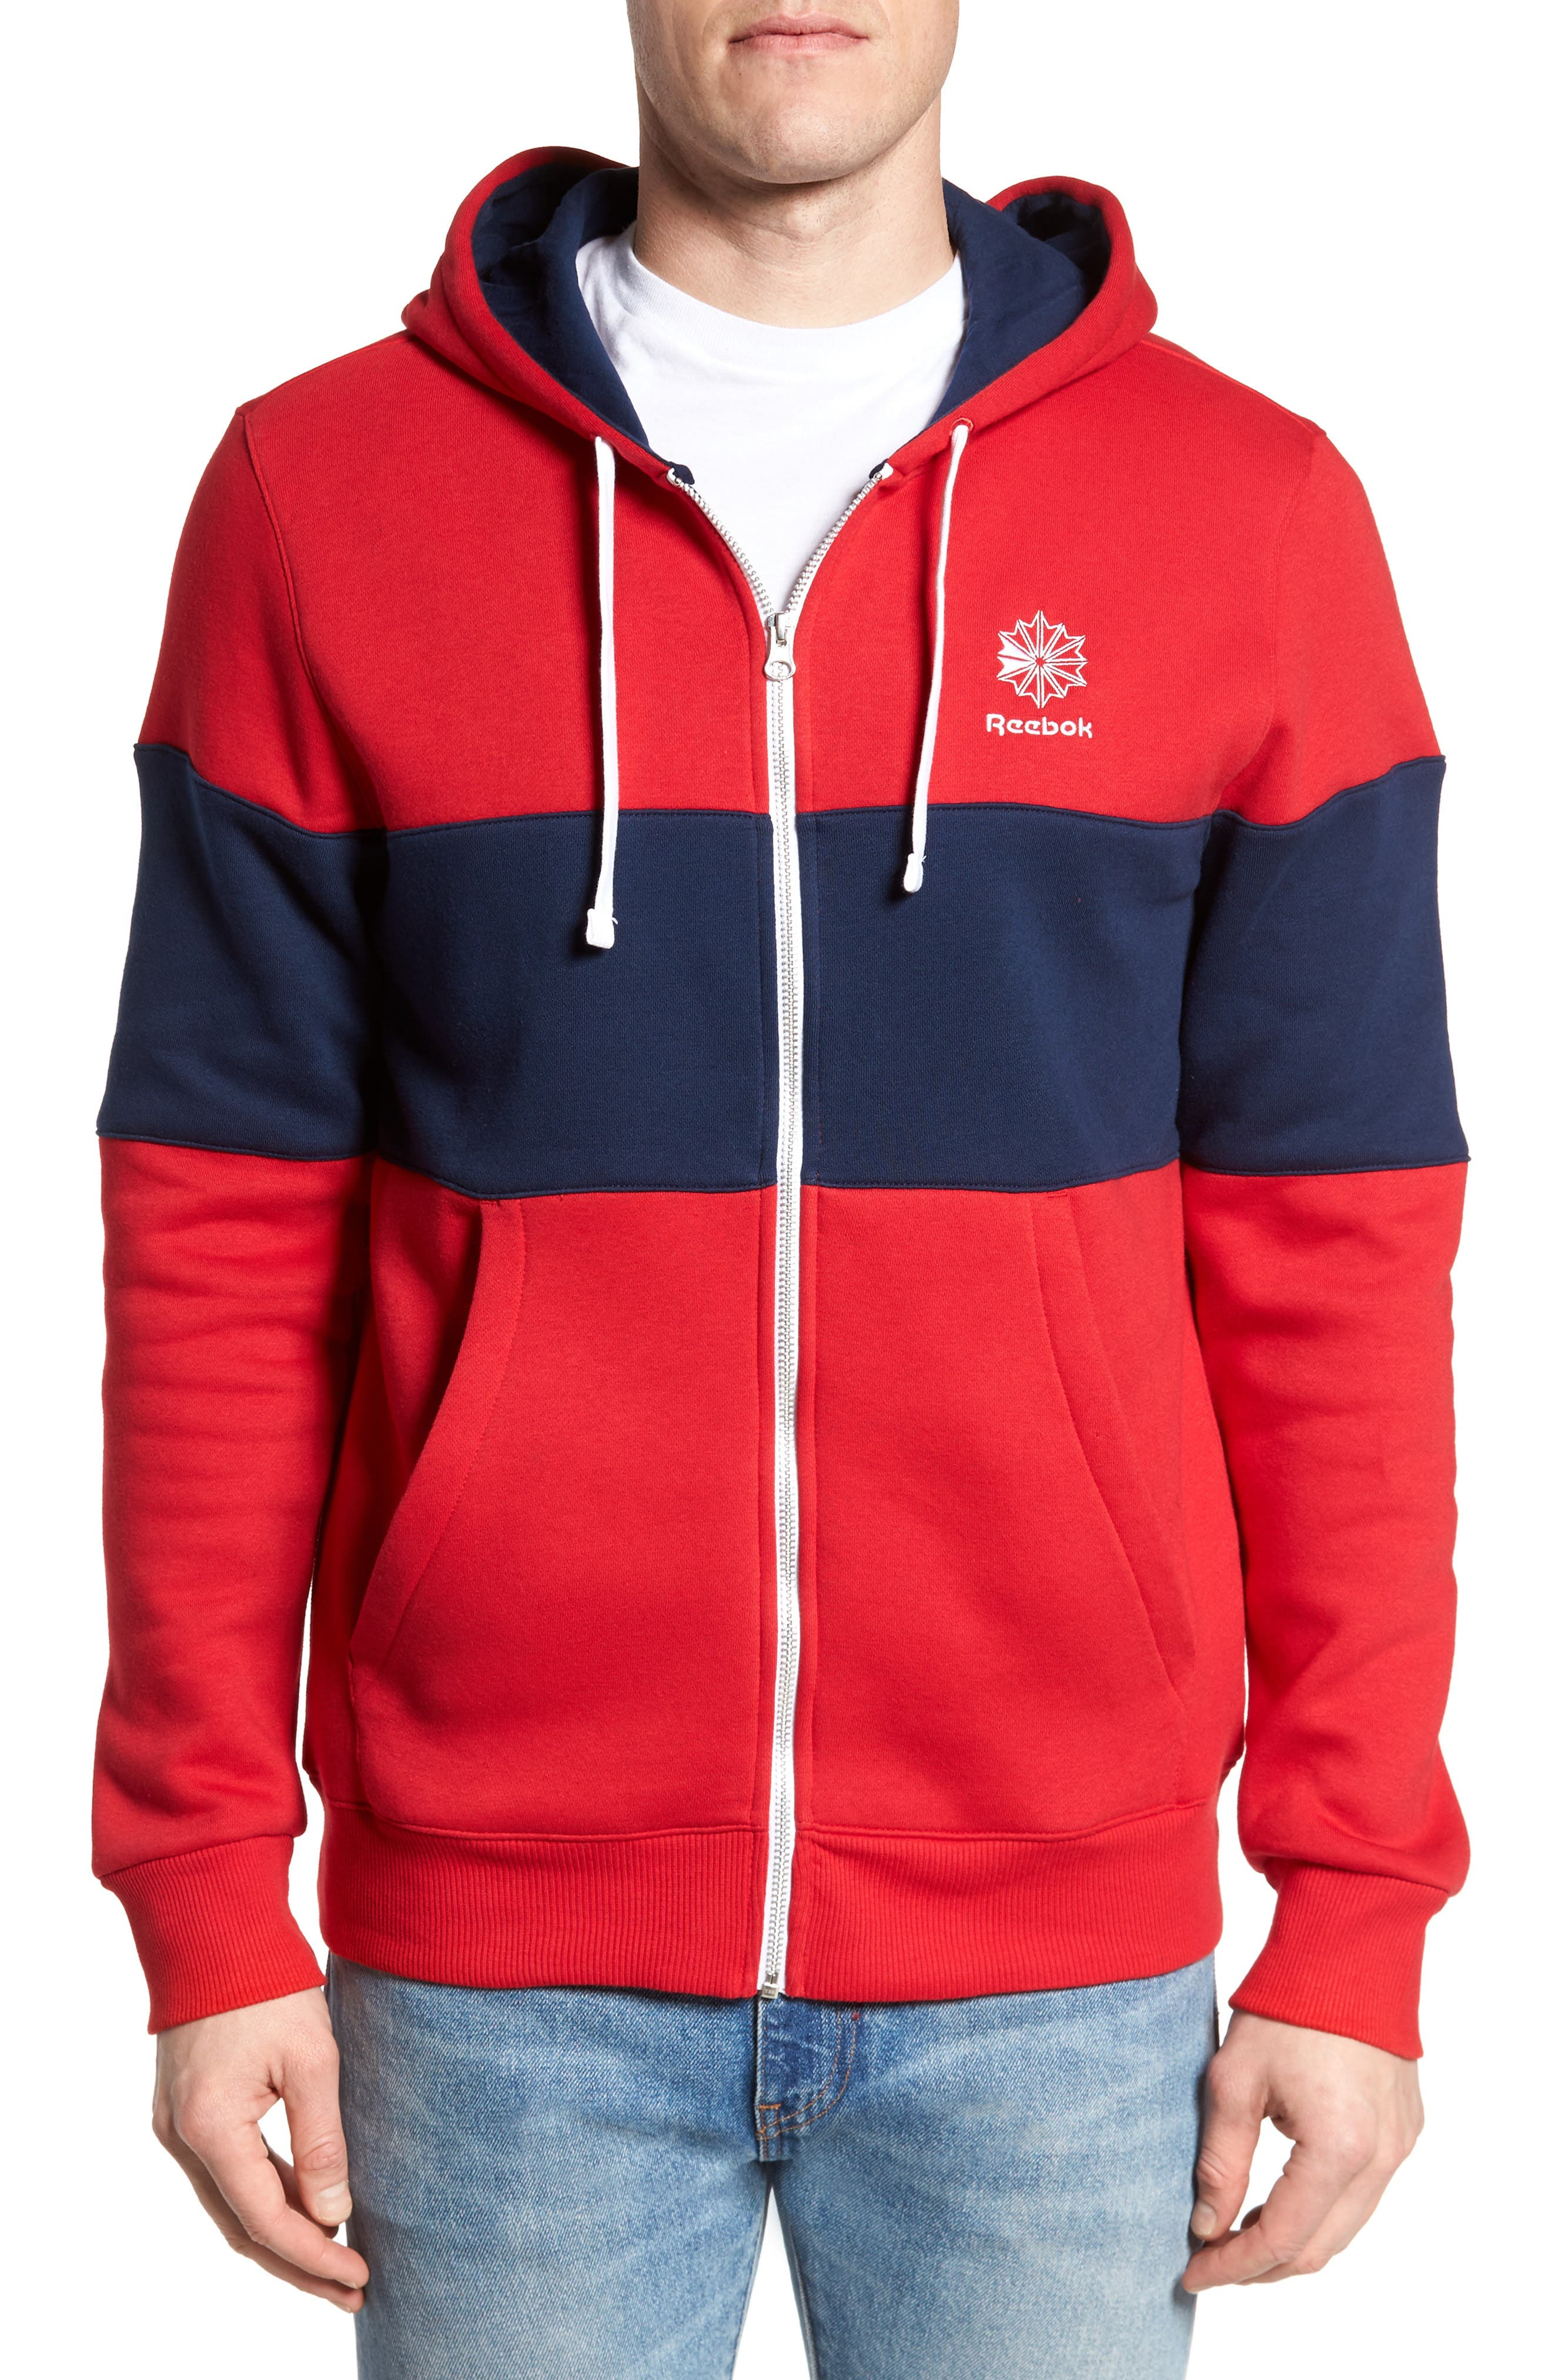 Classics Foundation Clockblock Zip Hoodie,                             Main thumbnail 1, color,                             Excellent Red/ Collegiate Navy